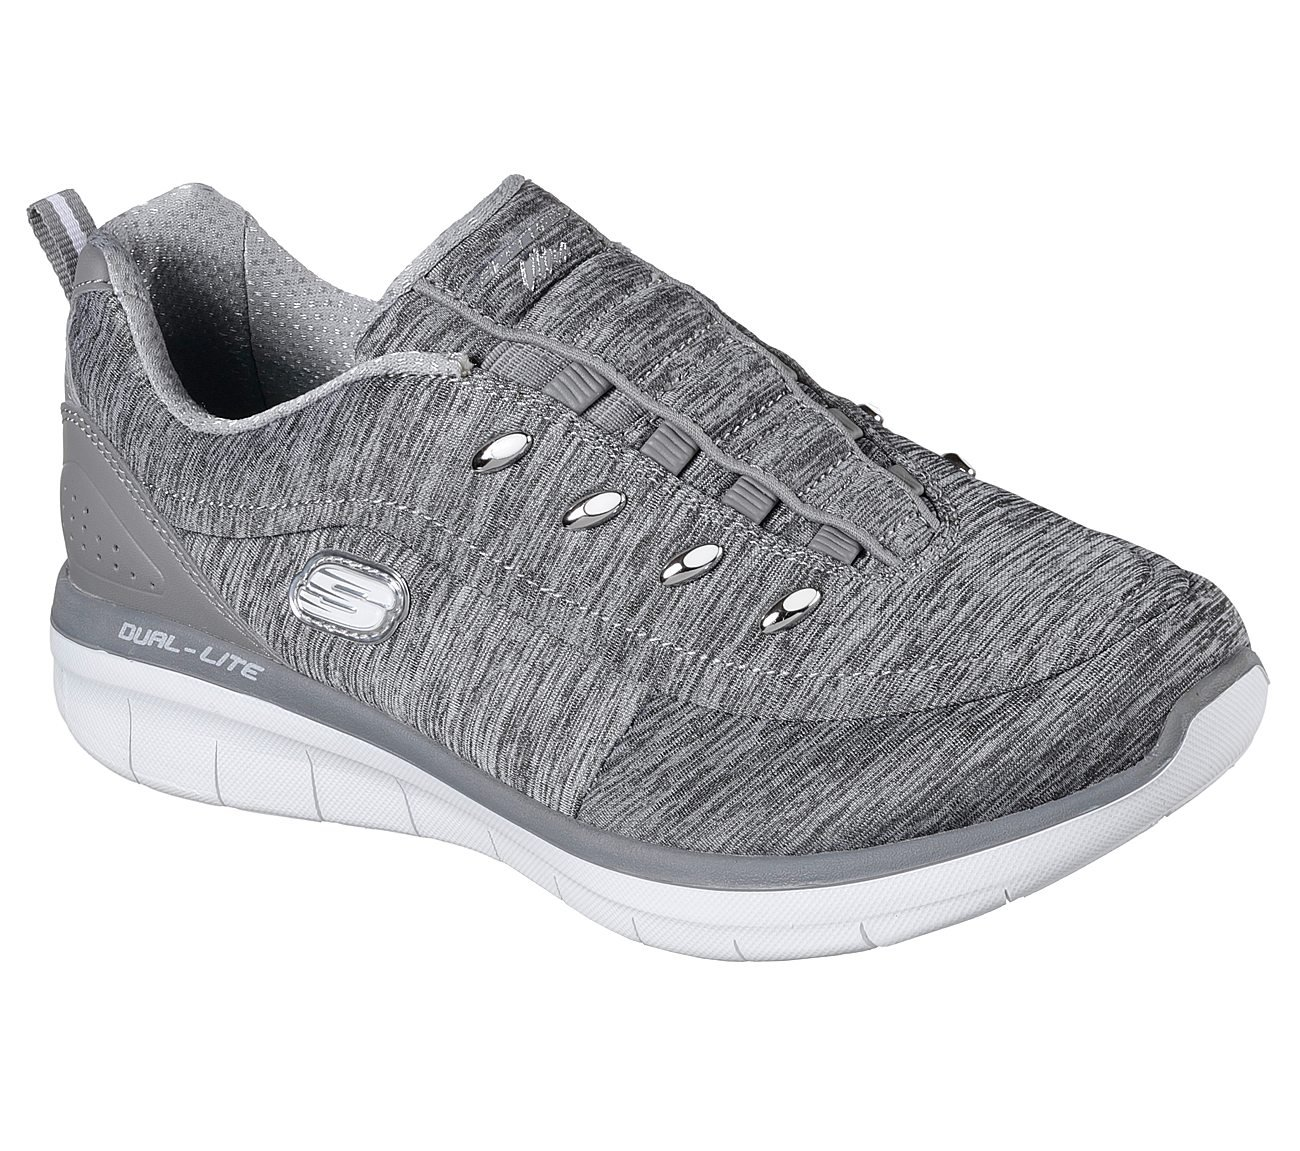 Skechers Women's Synergy 2.0-Scouted Wide Fashion Sneaker B074QF3KL3 11 C/D US|Grey